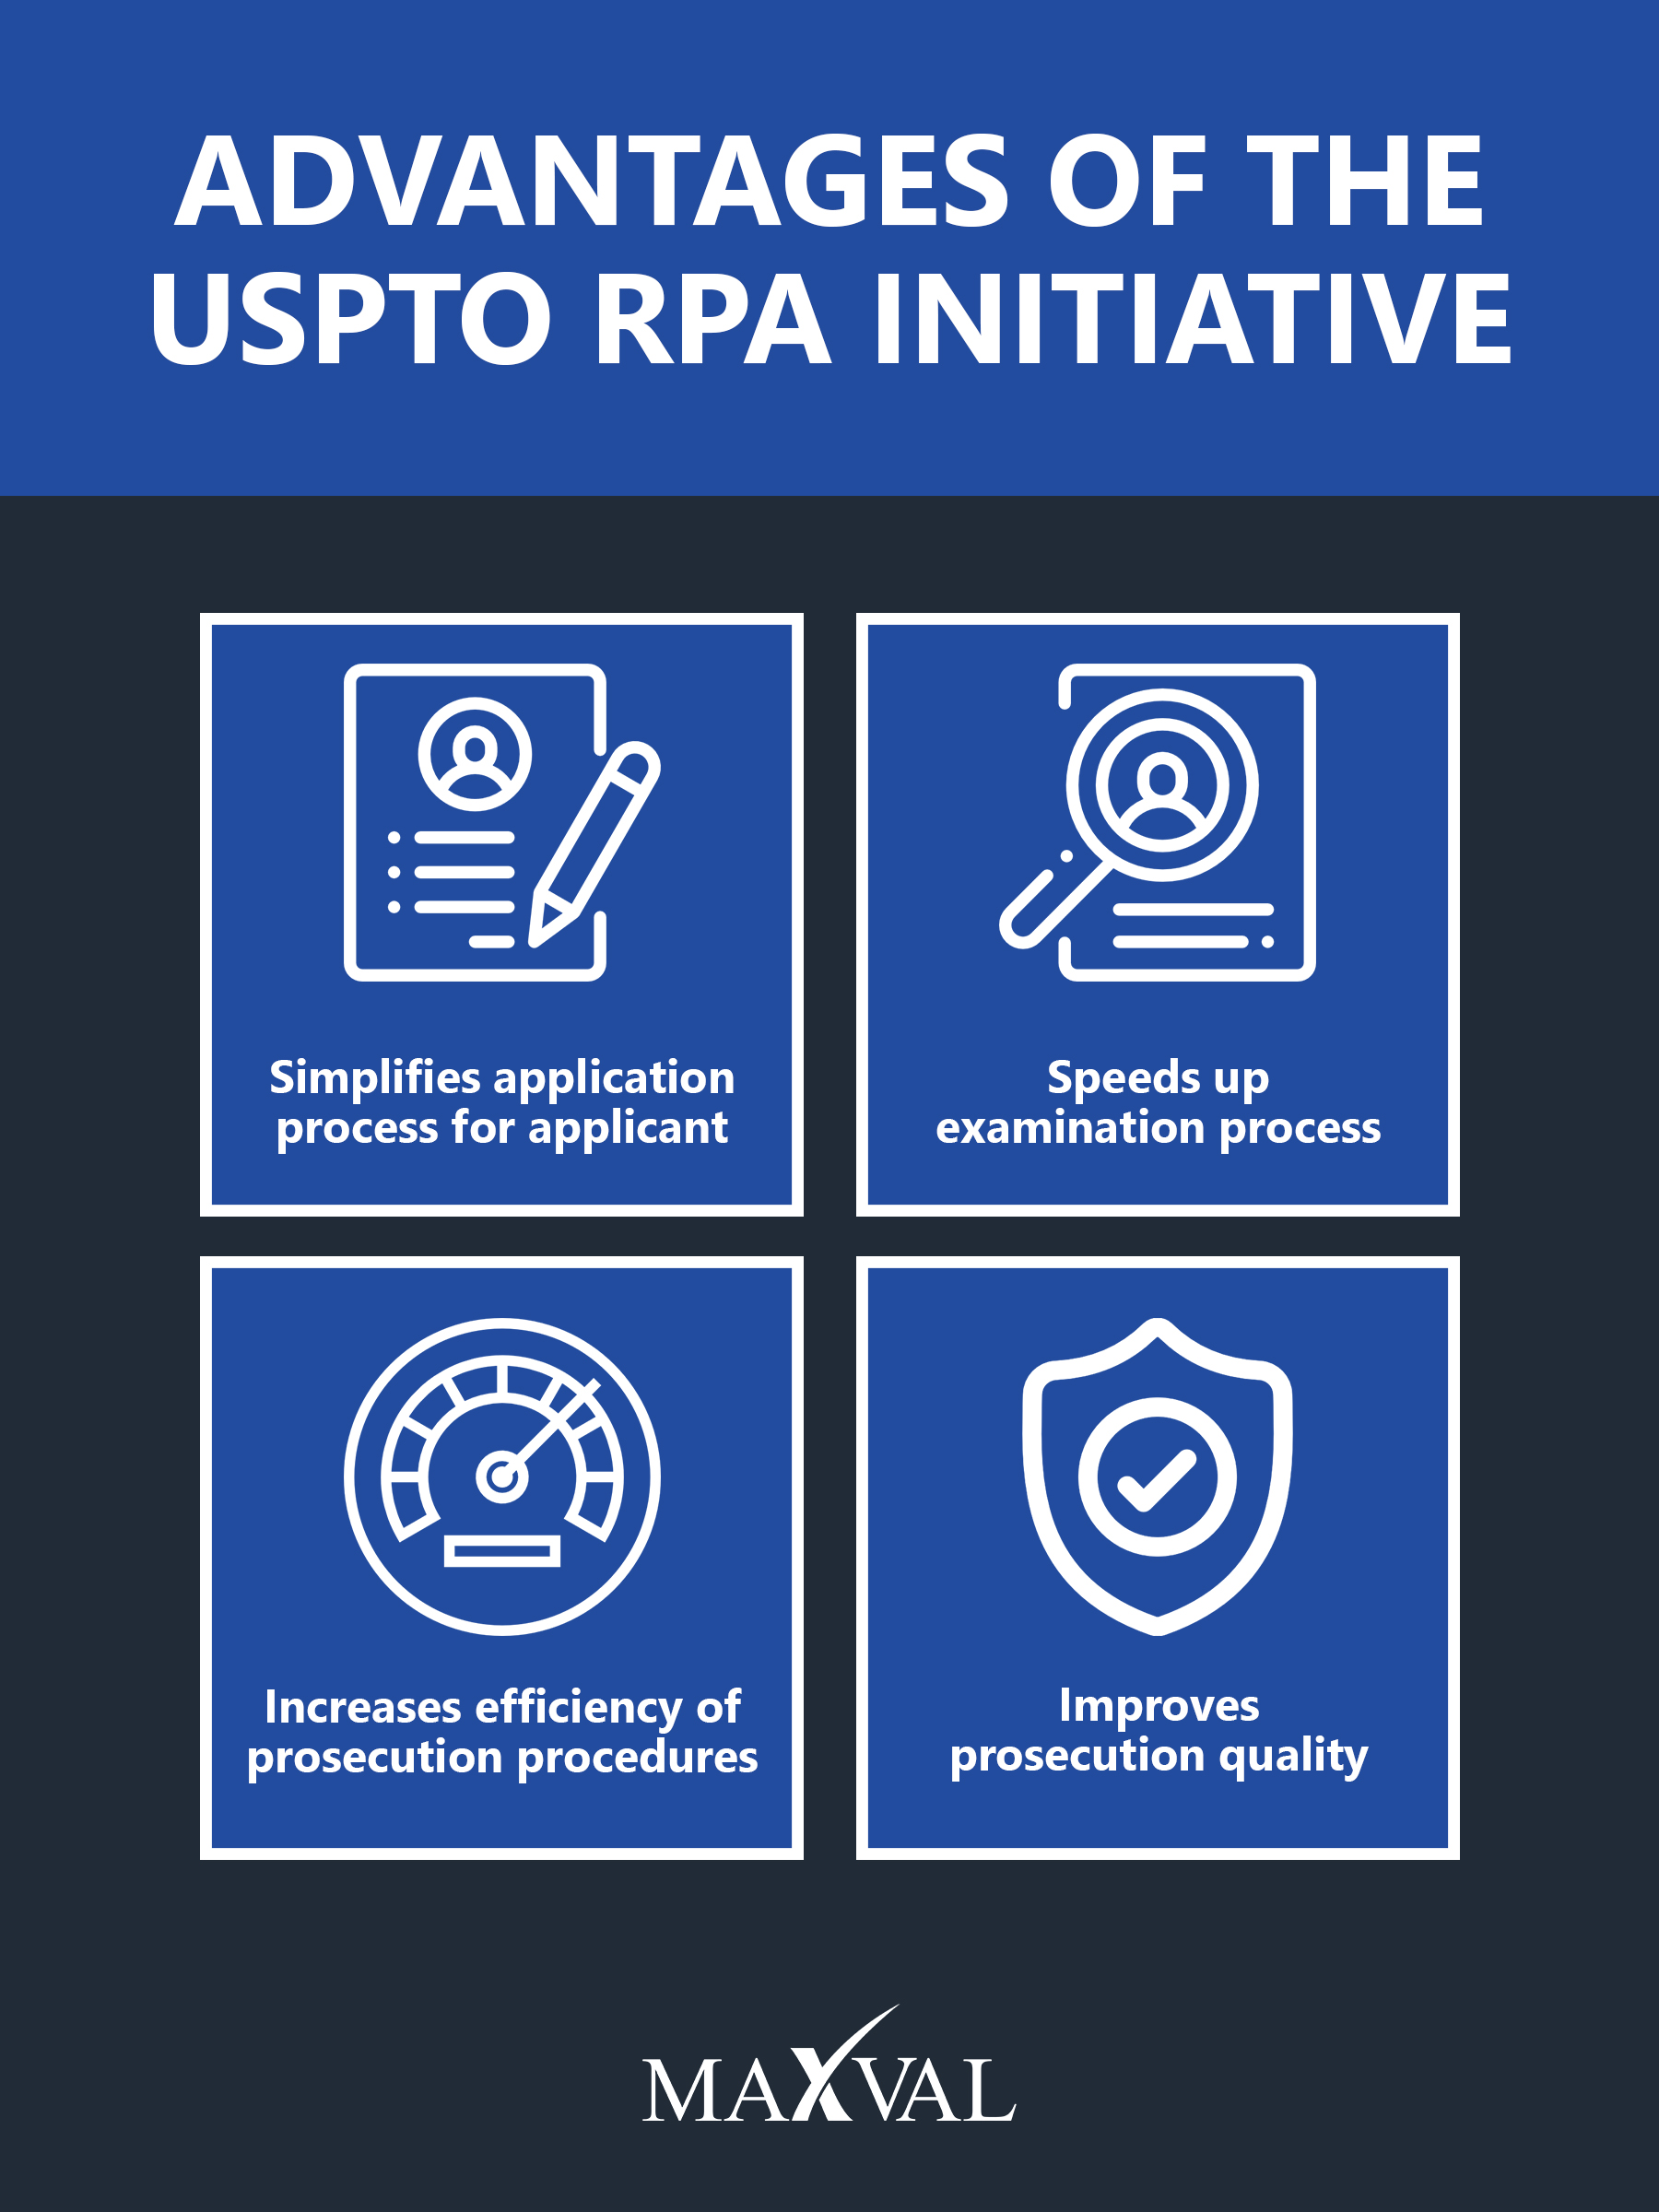 What to Know About the USPTO Access to Relevant Prior Art Initiative